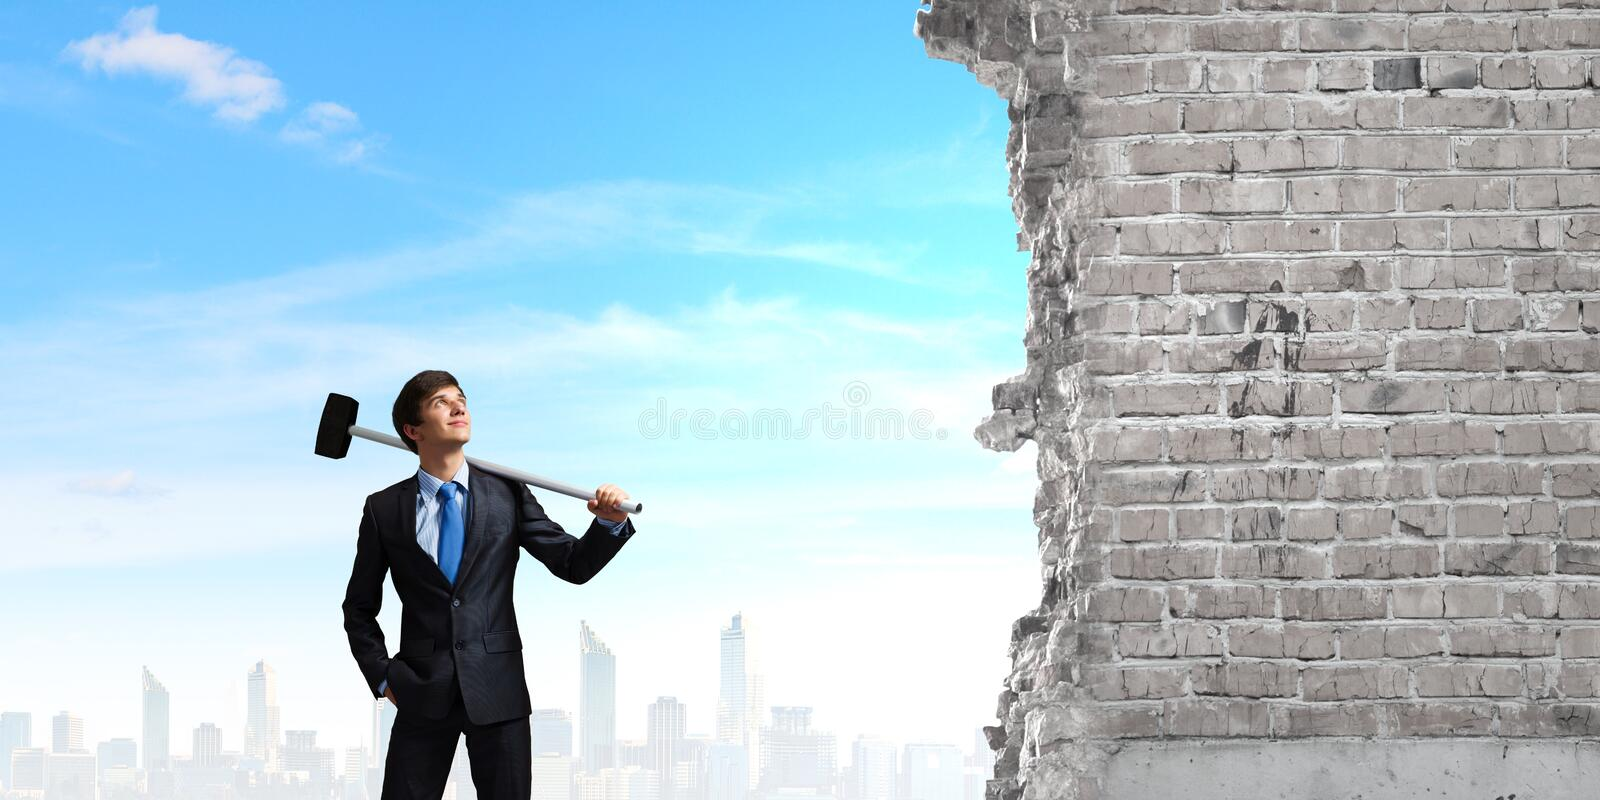 Download Overcoming Challenges Stock Photo - Image: 41890726